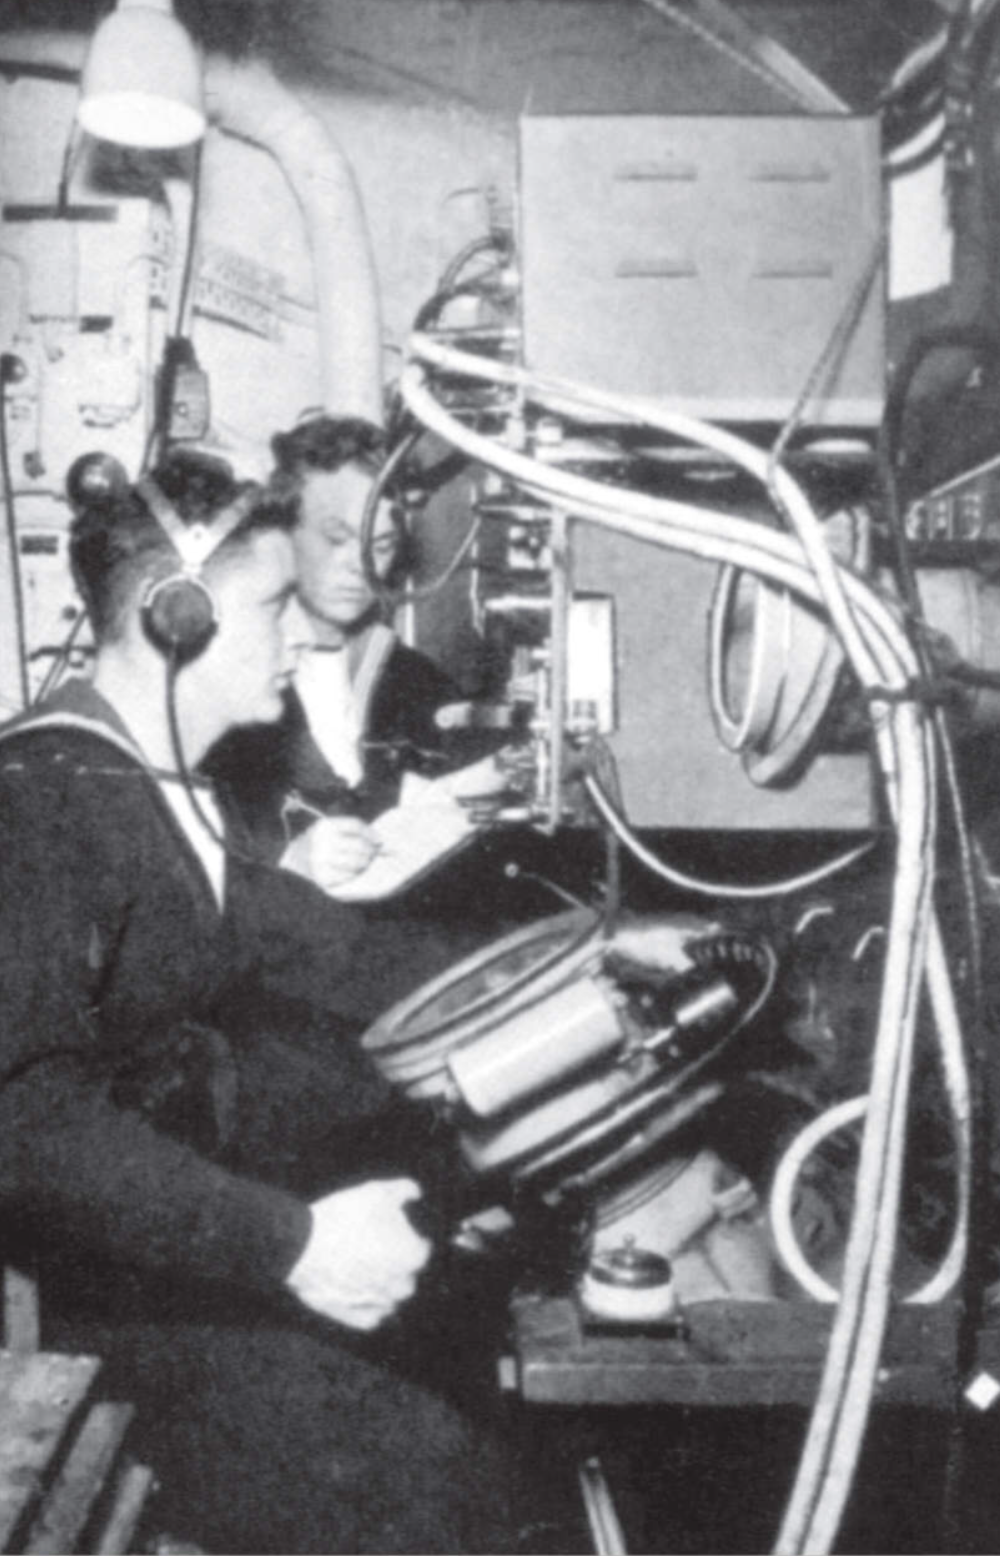 Operators with early examples of radar sets aboard an RN warship.